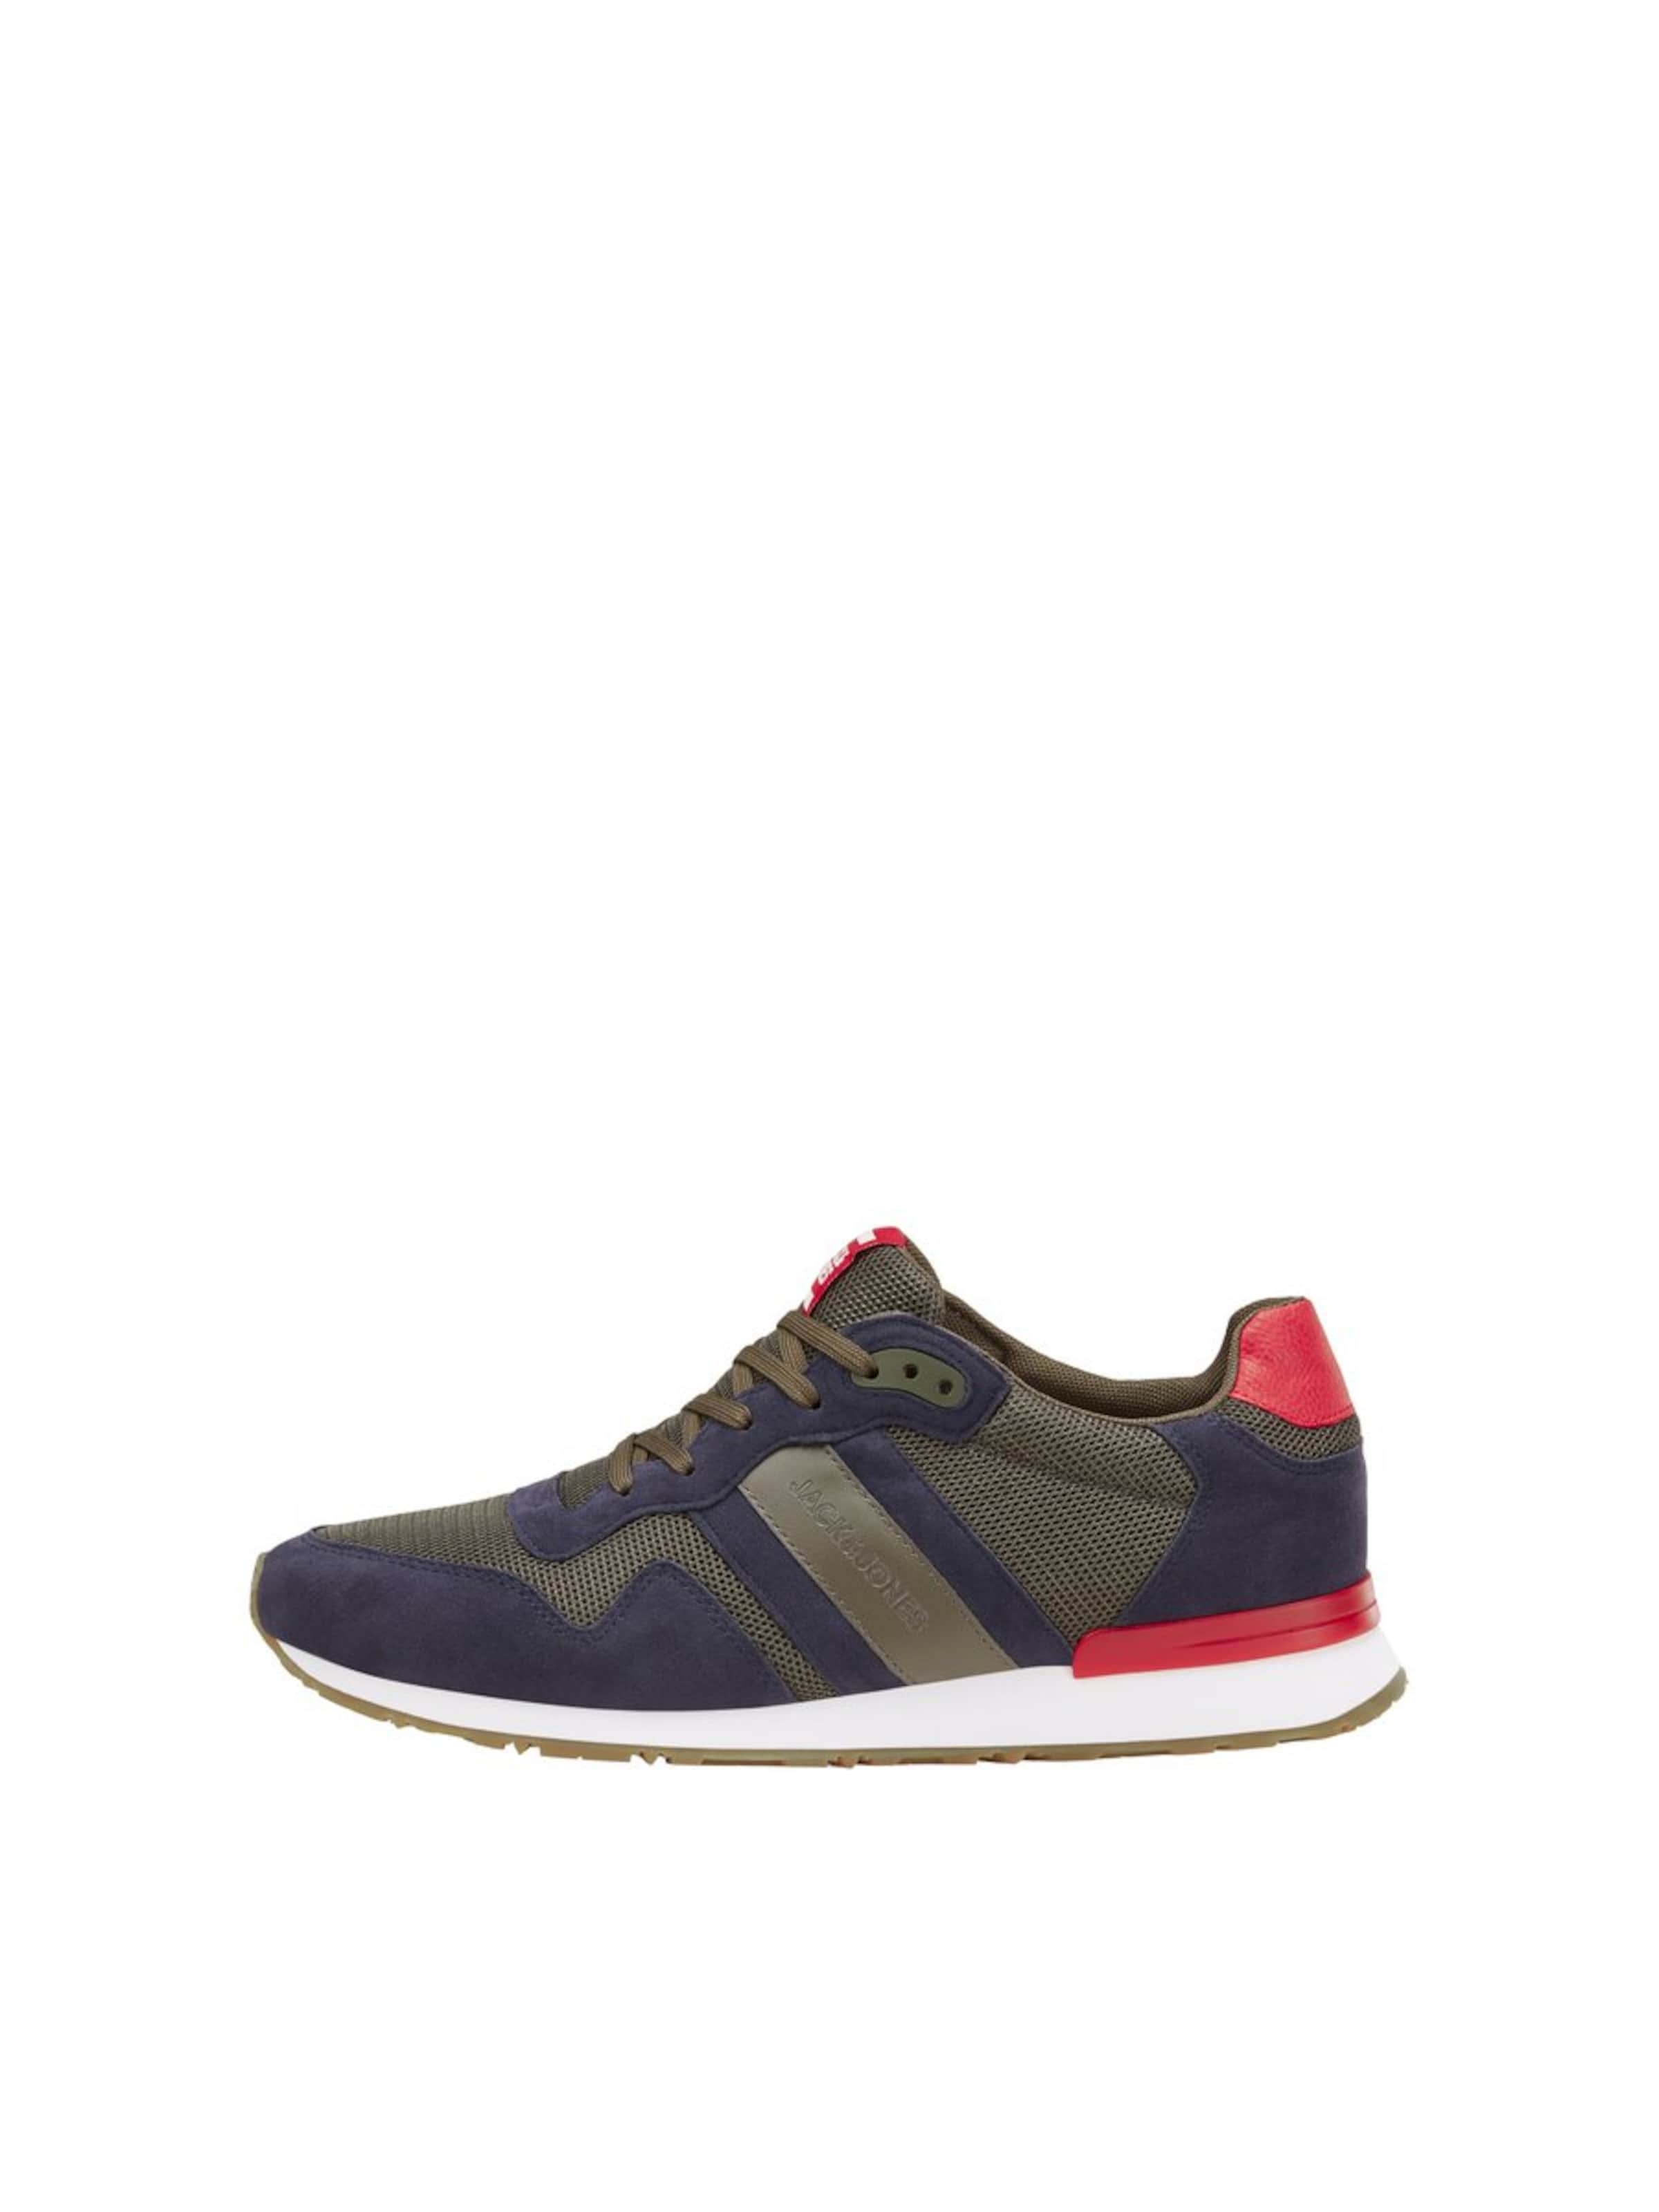 Jones Jackamp; NavyOliv Rot Sneaker In ulF1KJ3Tc